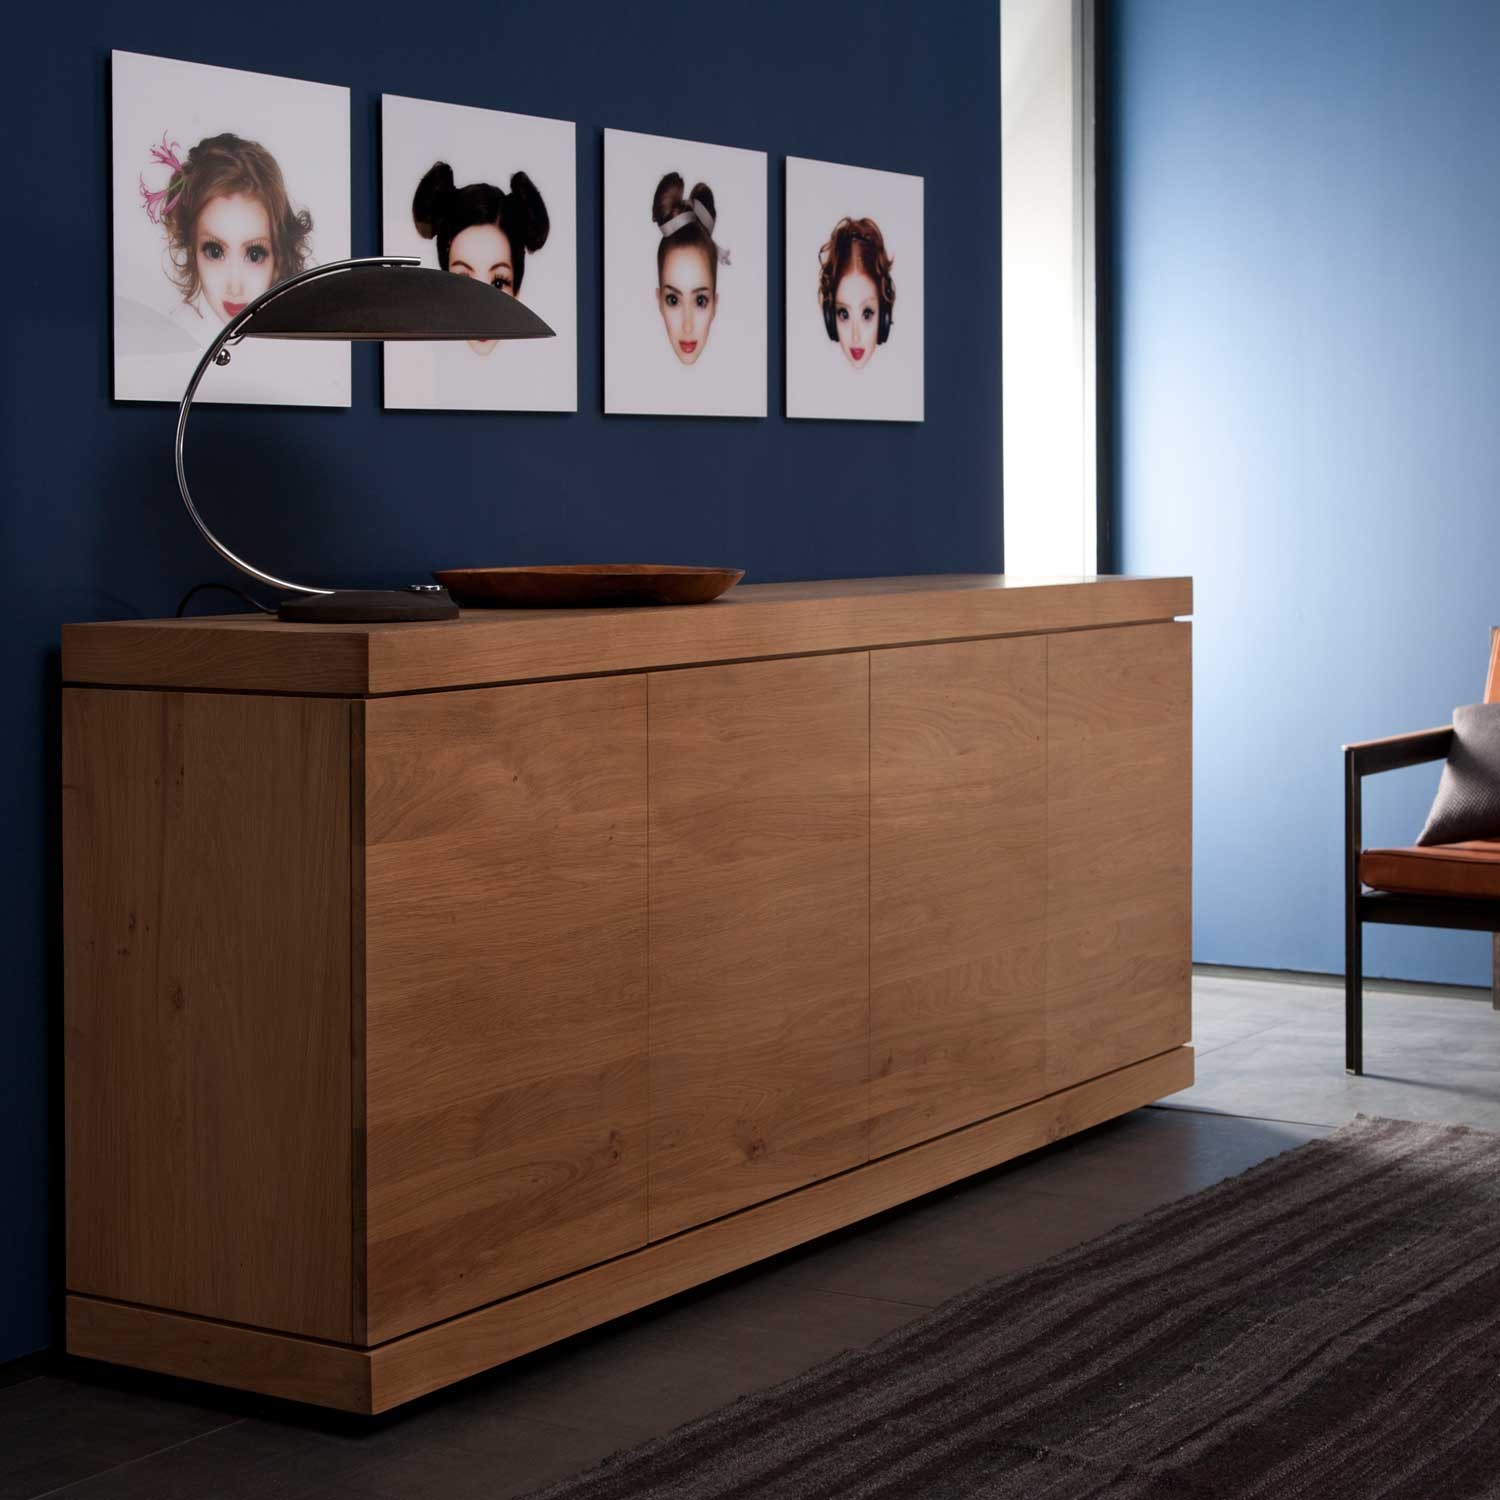 Ethnicraft Burger Oak Sideboard 150cm 3 Doors Solid